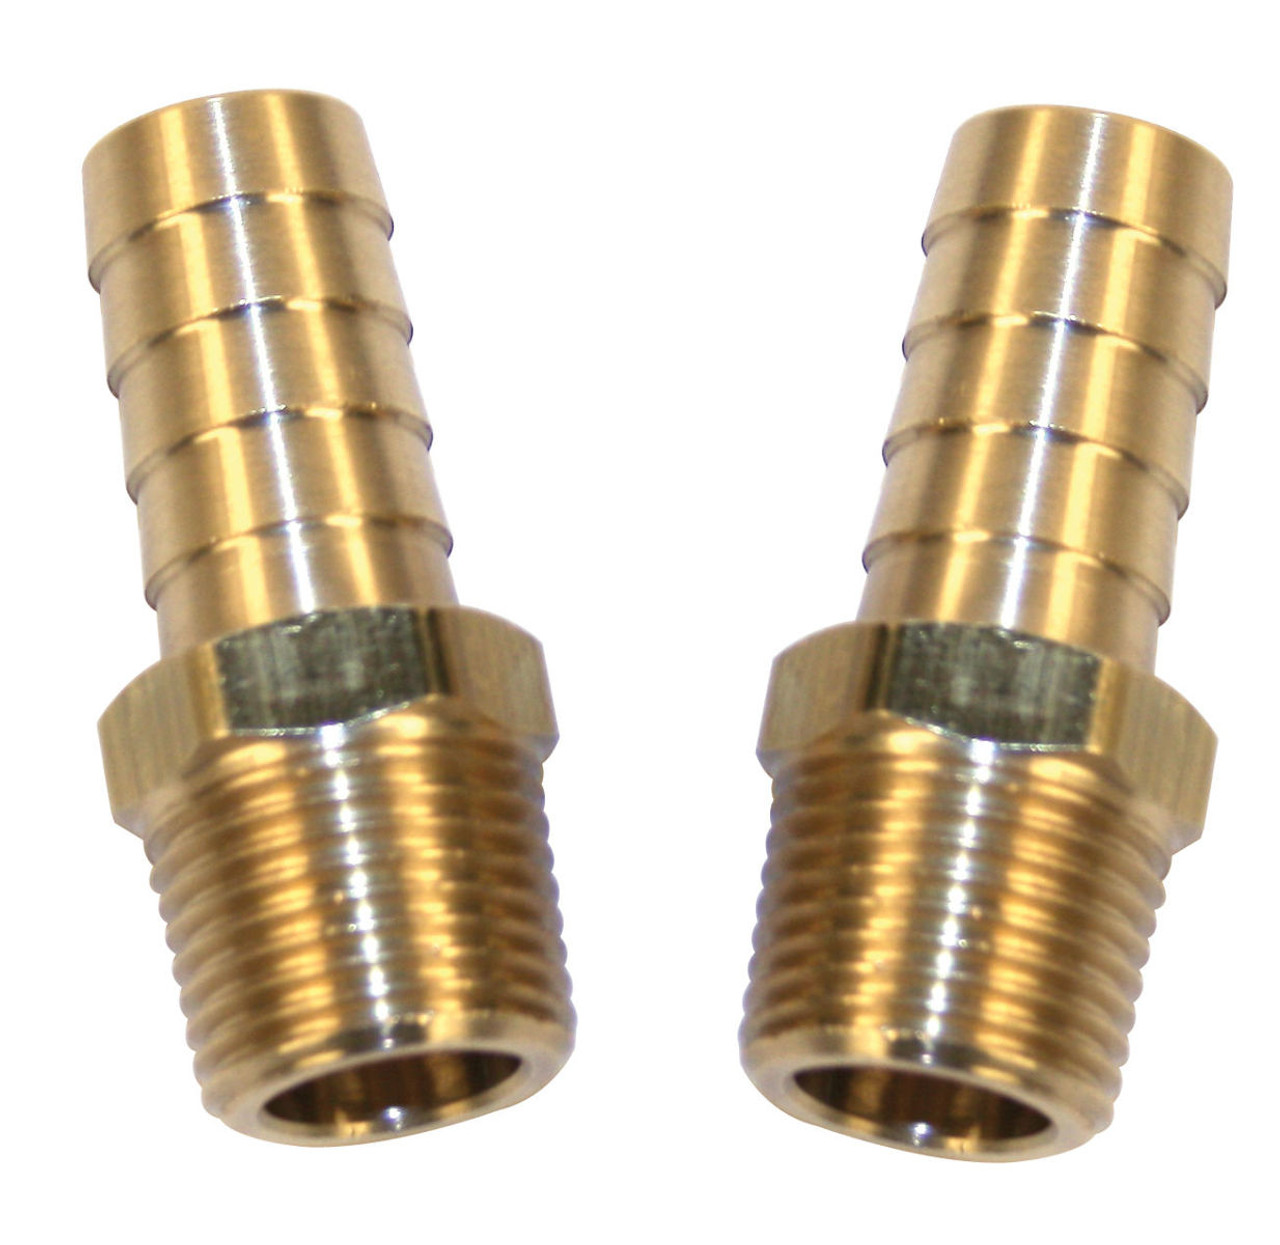 Brass Fitting, 1/2 Male NPT w/ 3/8 Hose Barb, Pack Of 2, Fits VW Air Cooled, EMPI 9213